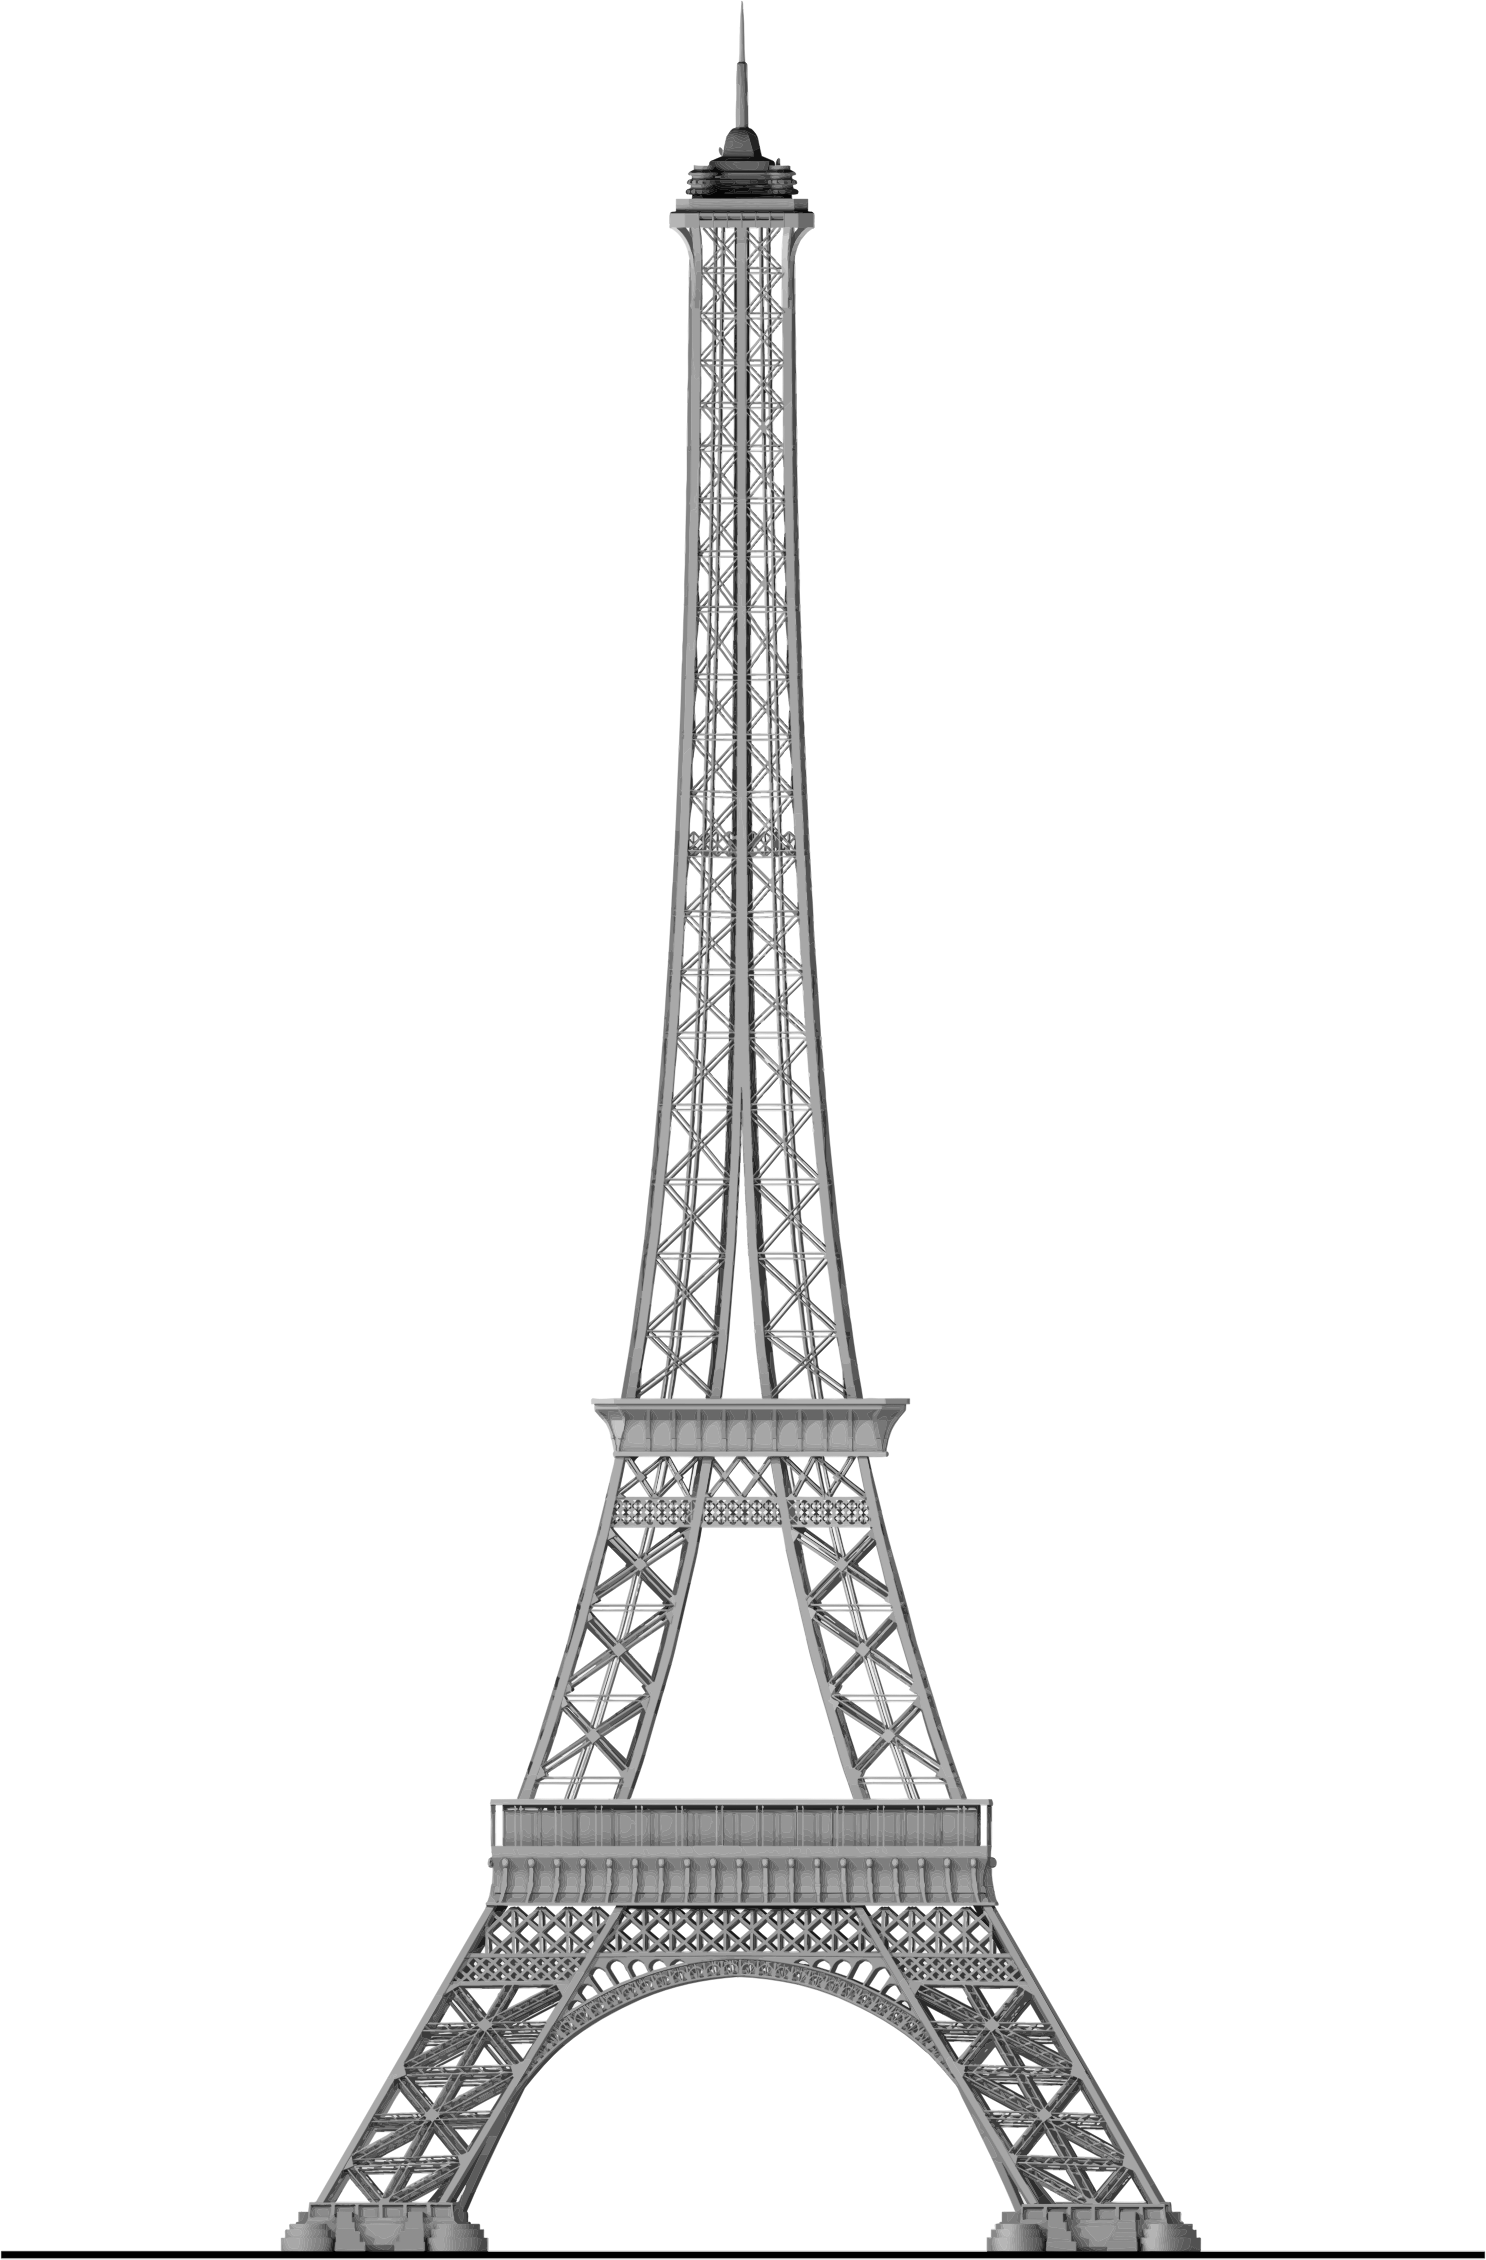 Eiffel tower silhouette png. Detailed trace icons free